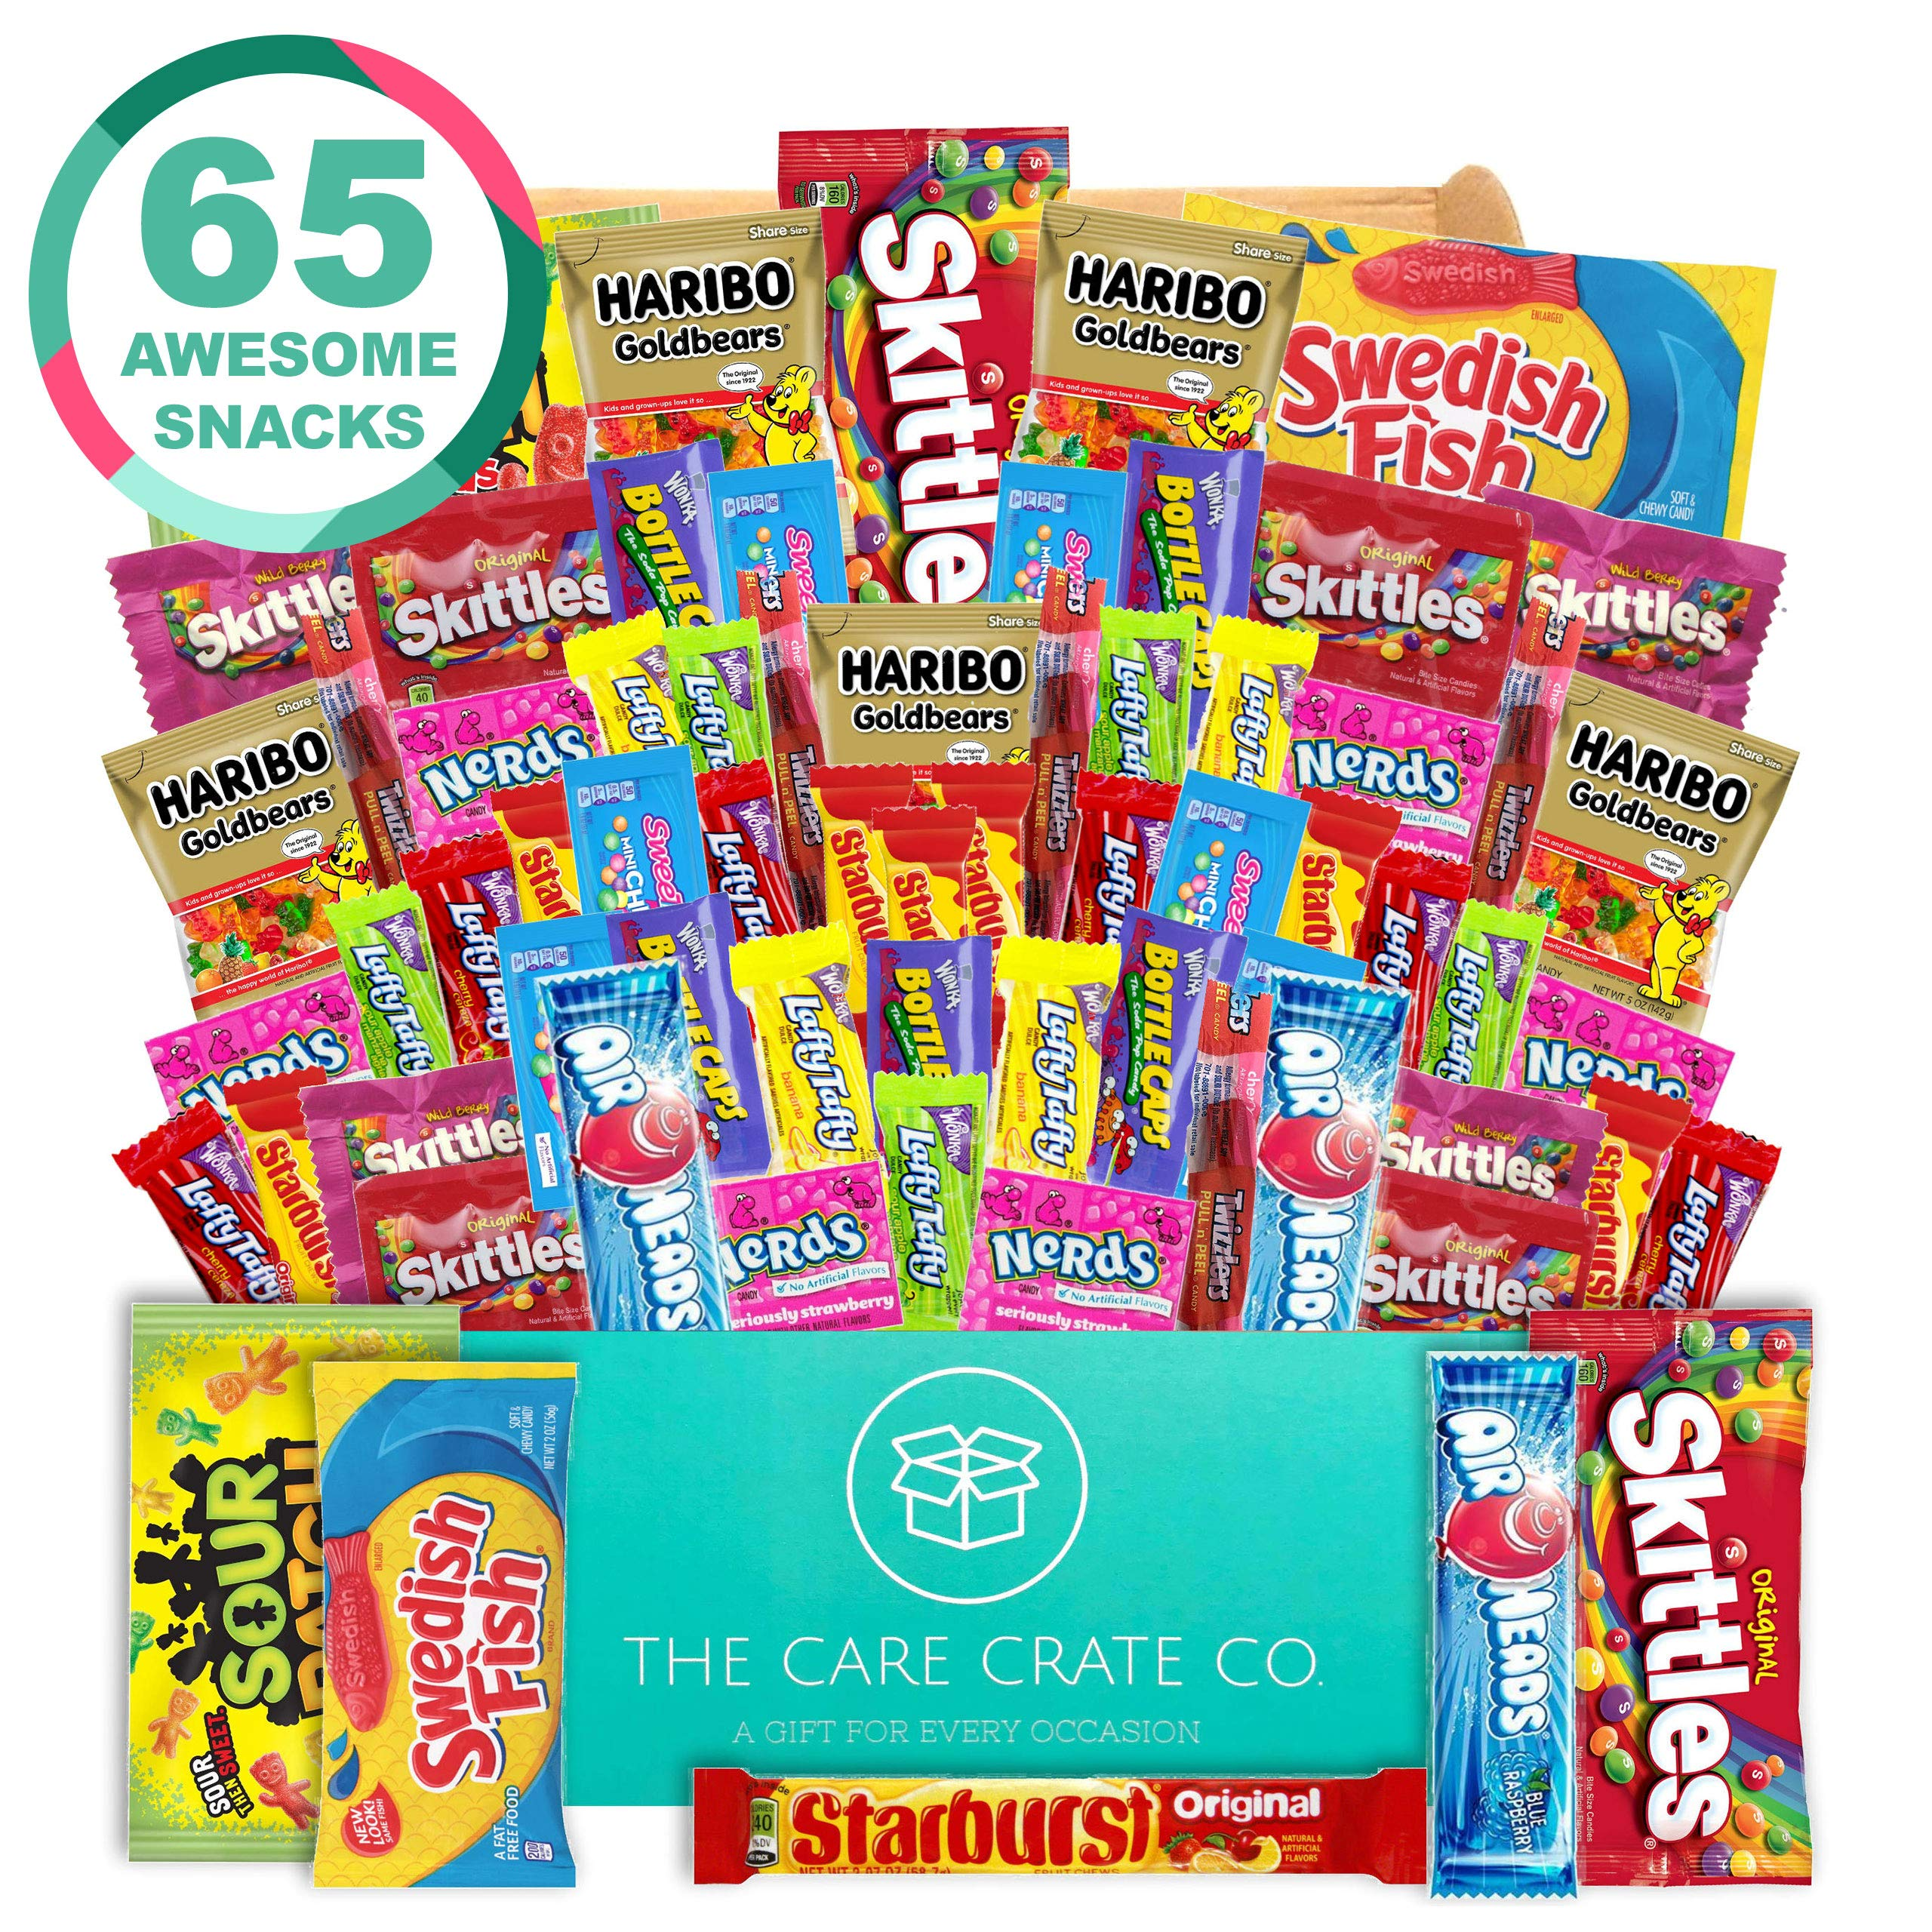 The Care Crate Ultimate Candy Snack Box Care Package ( 65 piece Candy and Snack Pack ) Includes 10 Full Size Candies - Starburst, Skittles, Twizzlers, Chips, Pretzels & More!